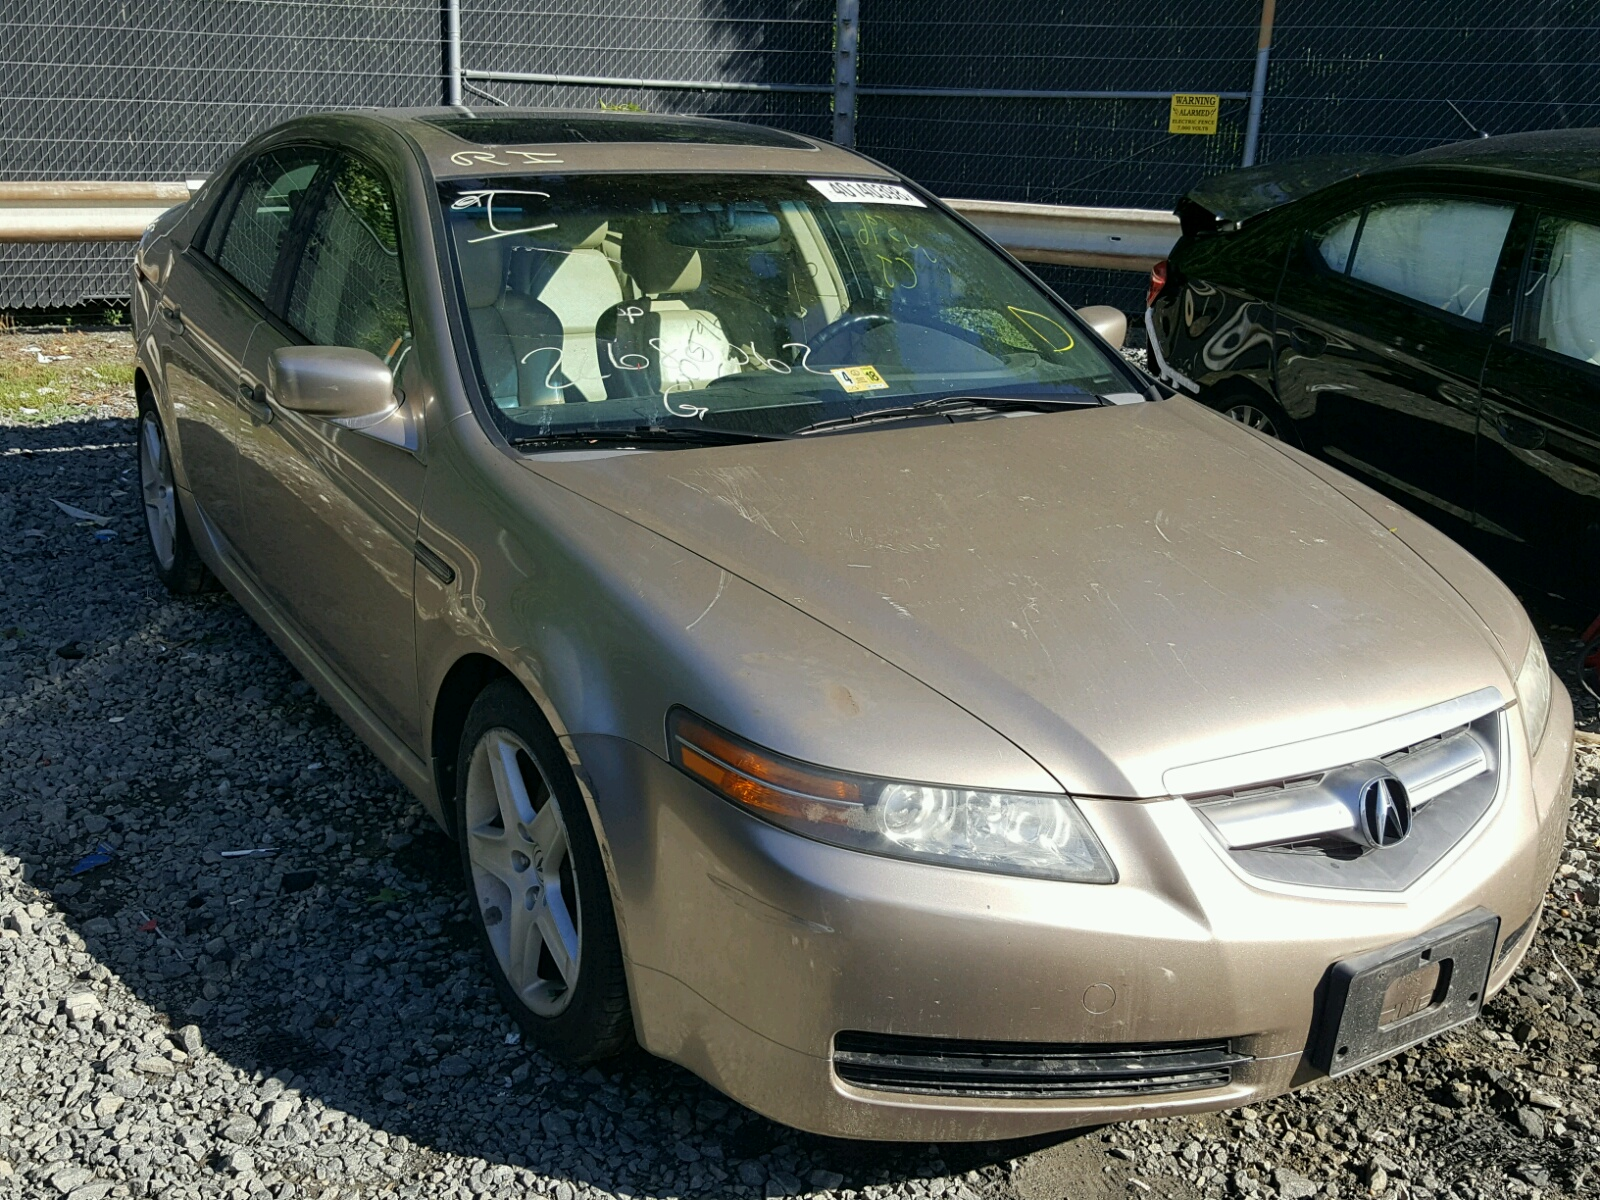 Acura TL For Sale At Copart Waldorf MD Lot - Acura tl for sale in md